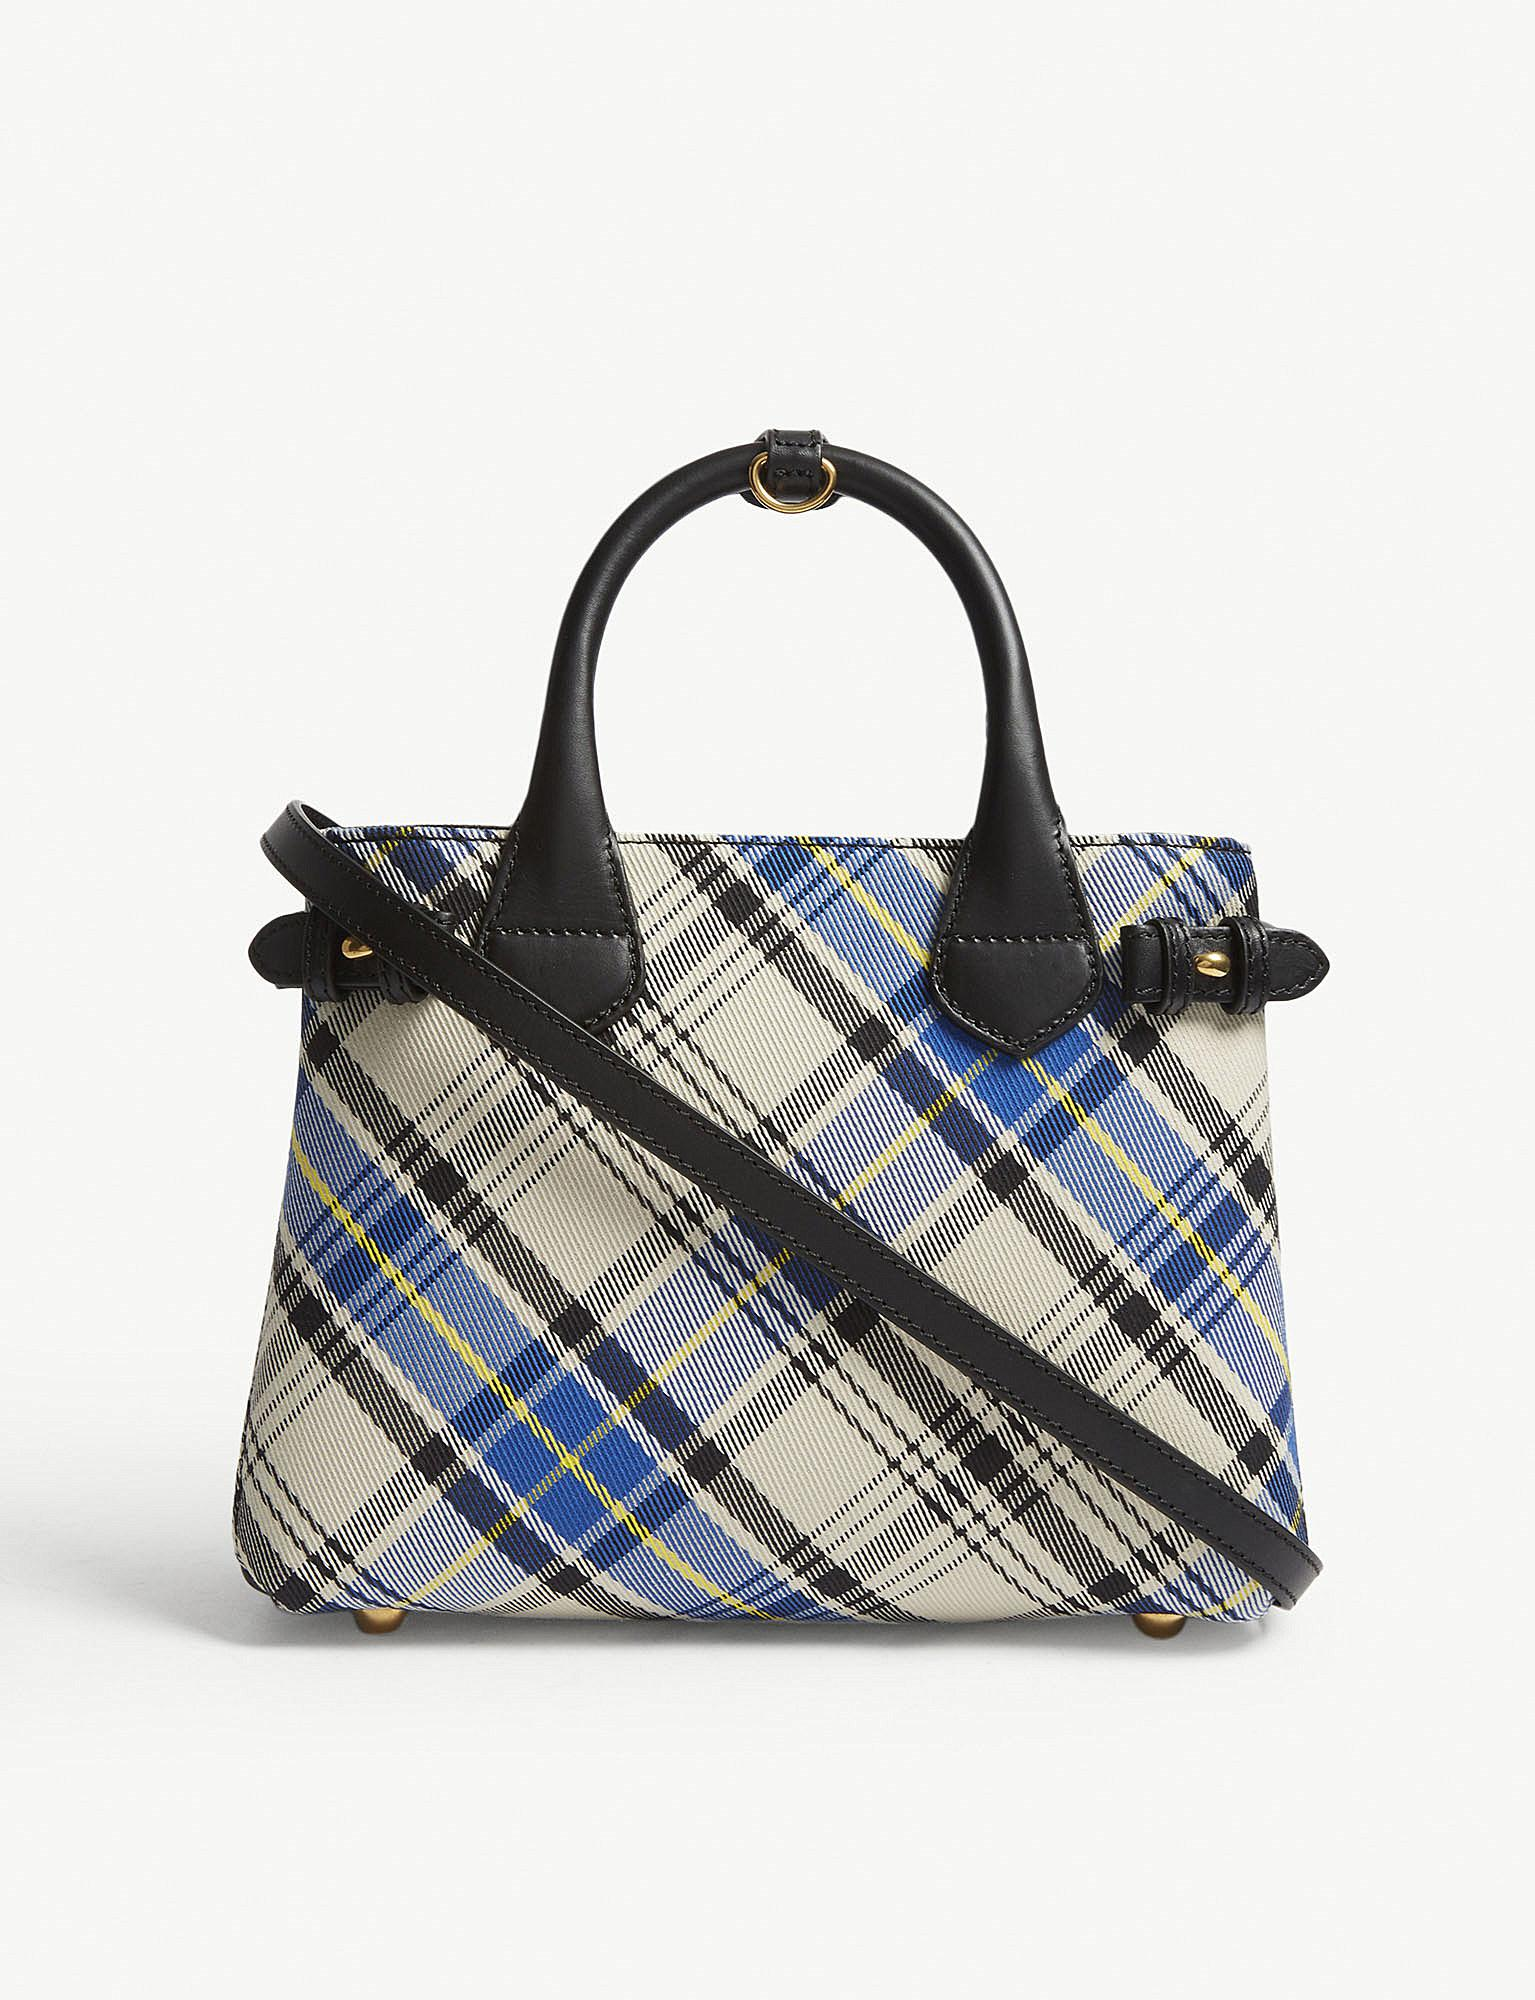 5f2e9ff71f80 Lyst - Burberry Chalk White Tartan Check Banner Small And Leather ...